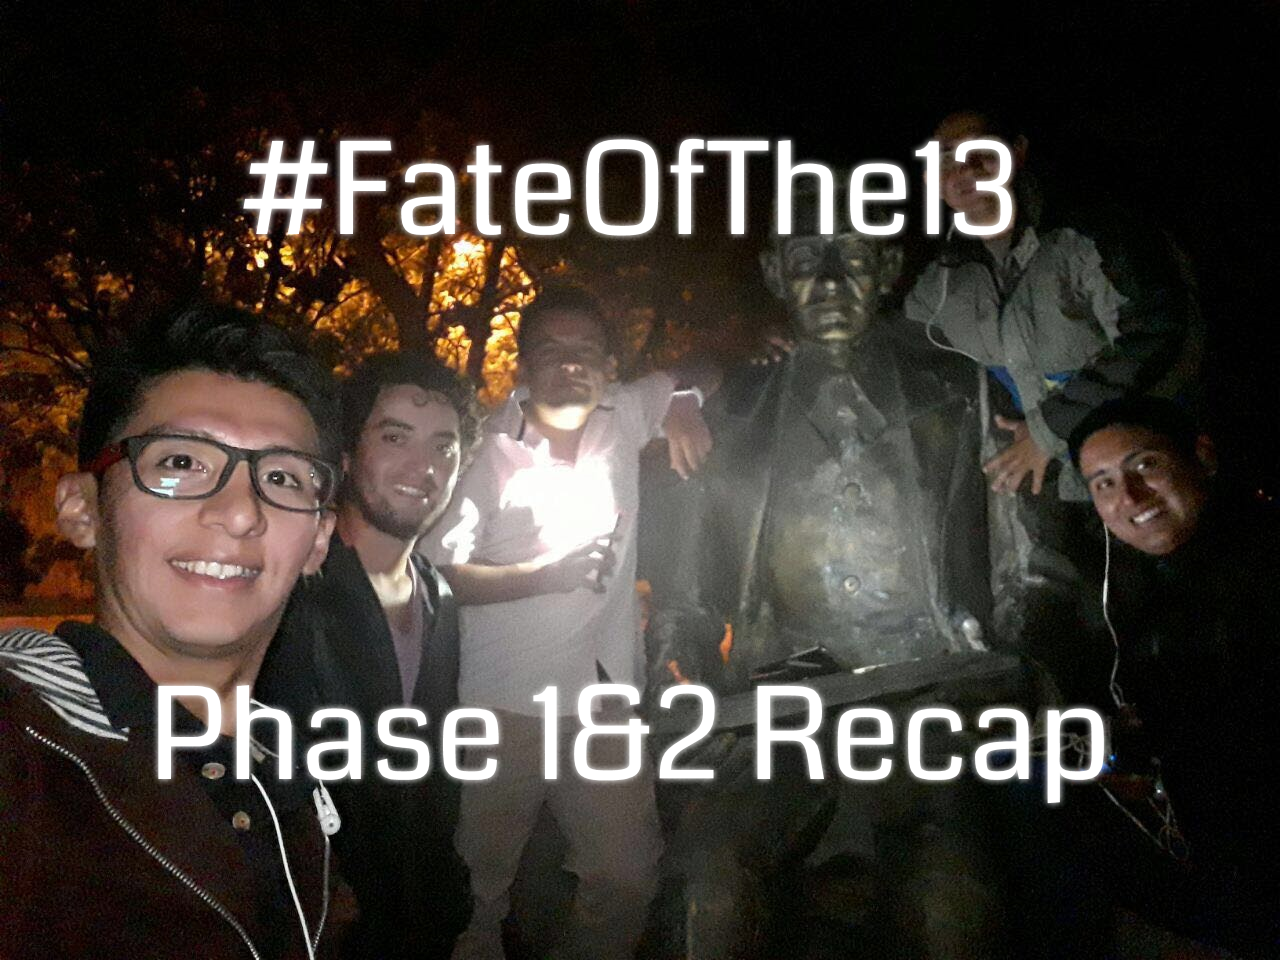 #fateofthe13 featured